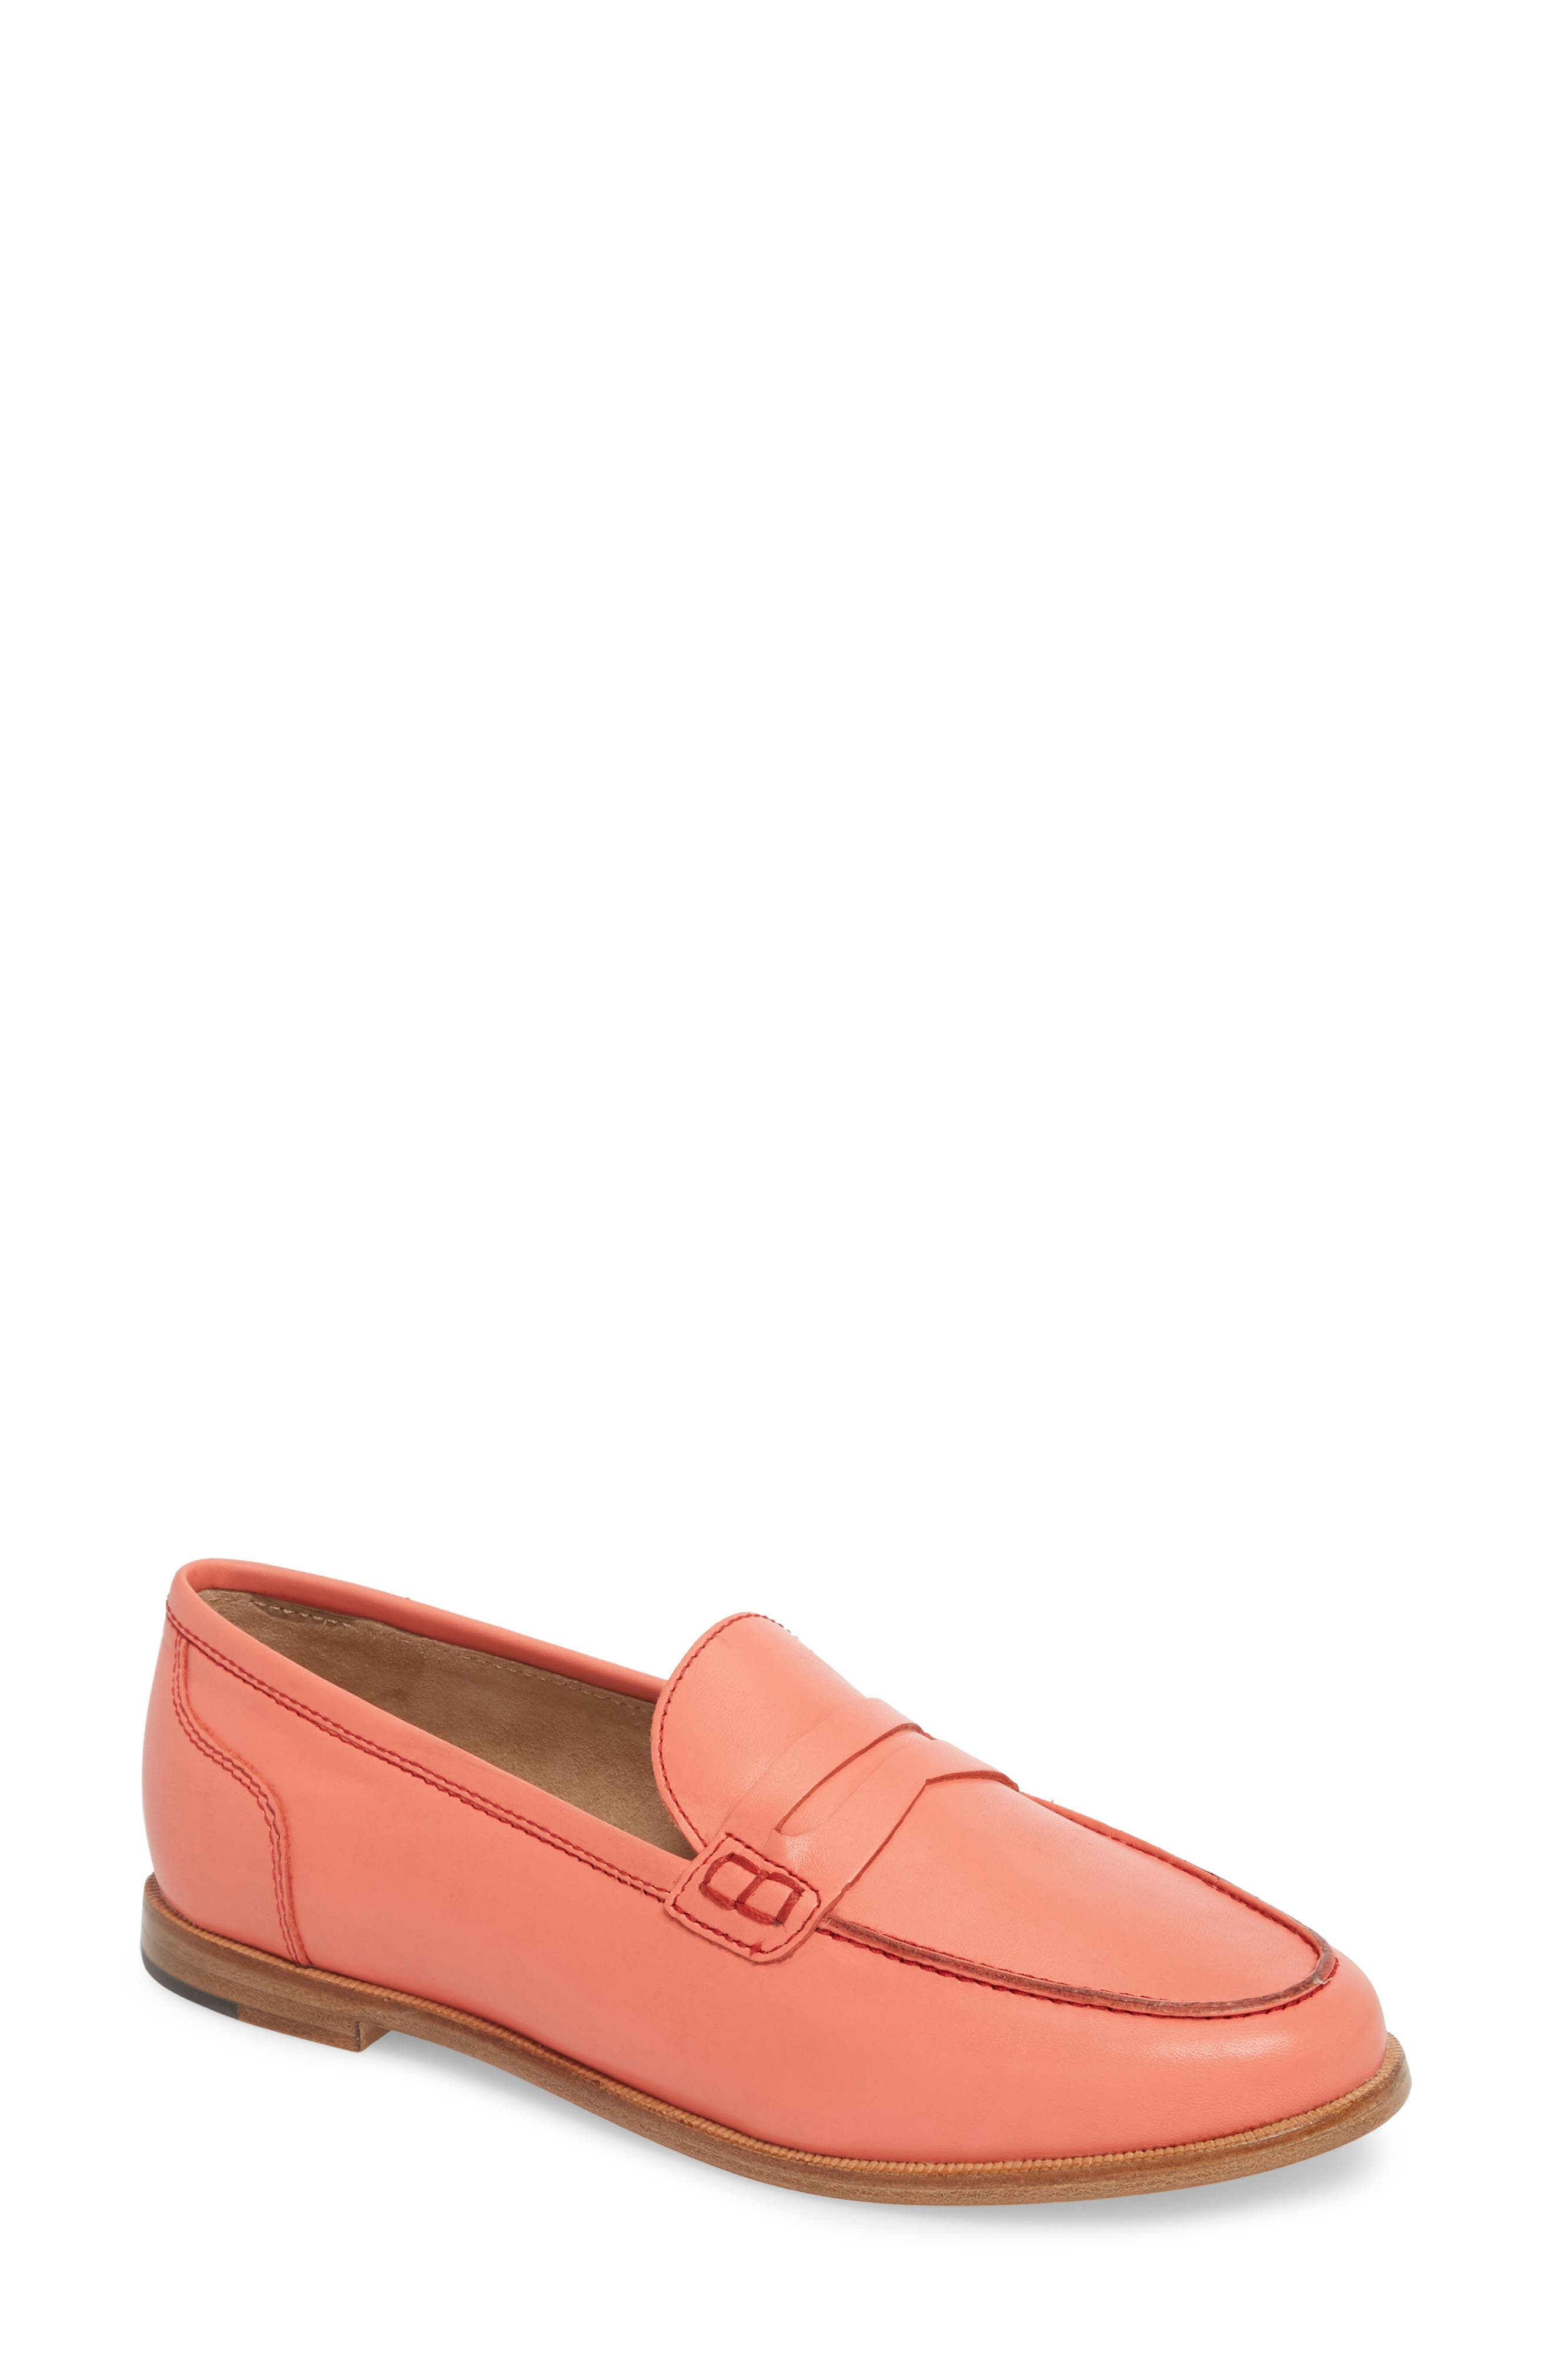 Ryan Penny Loafer,                             Main thumbnail 1, color,                             RUST LEATHER